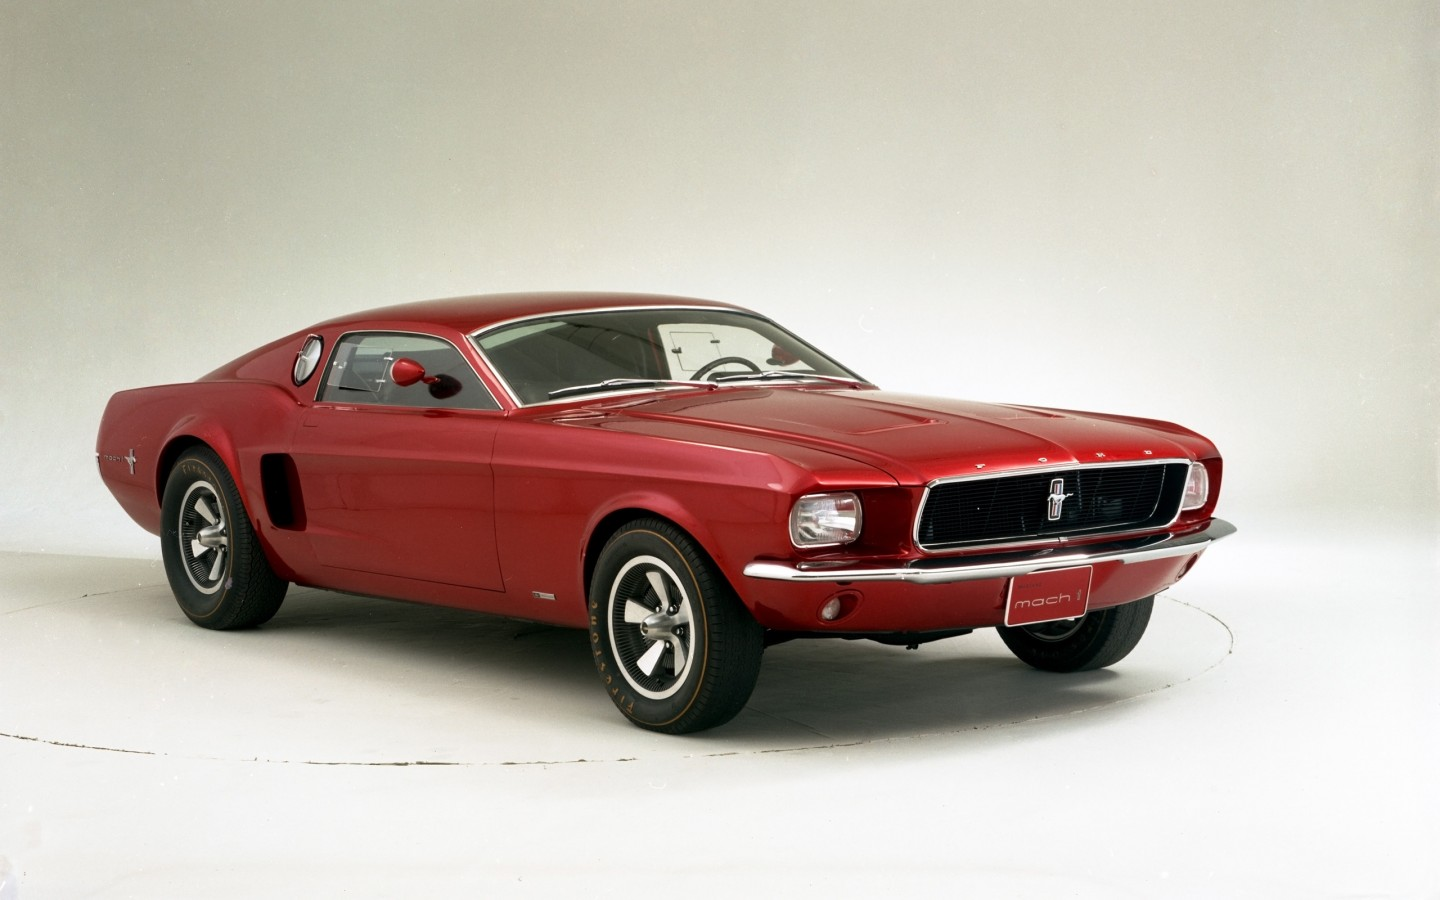 1966 ford mustang mach i concept wallpaper hd car. Black Bedroom Furniture Sets. Home Design Ideas